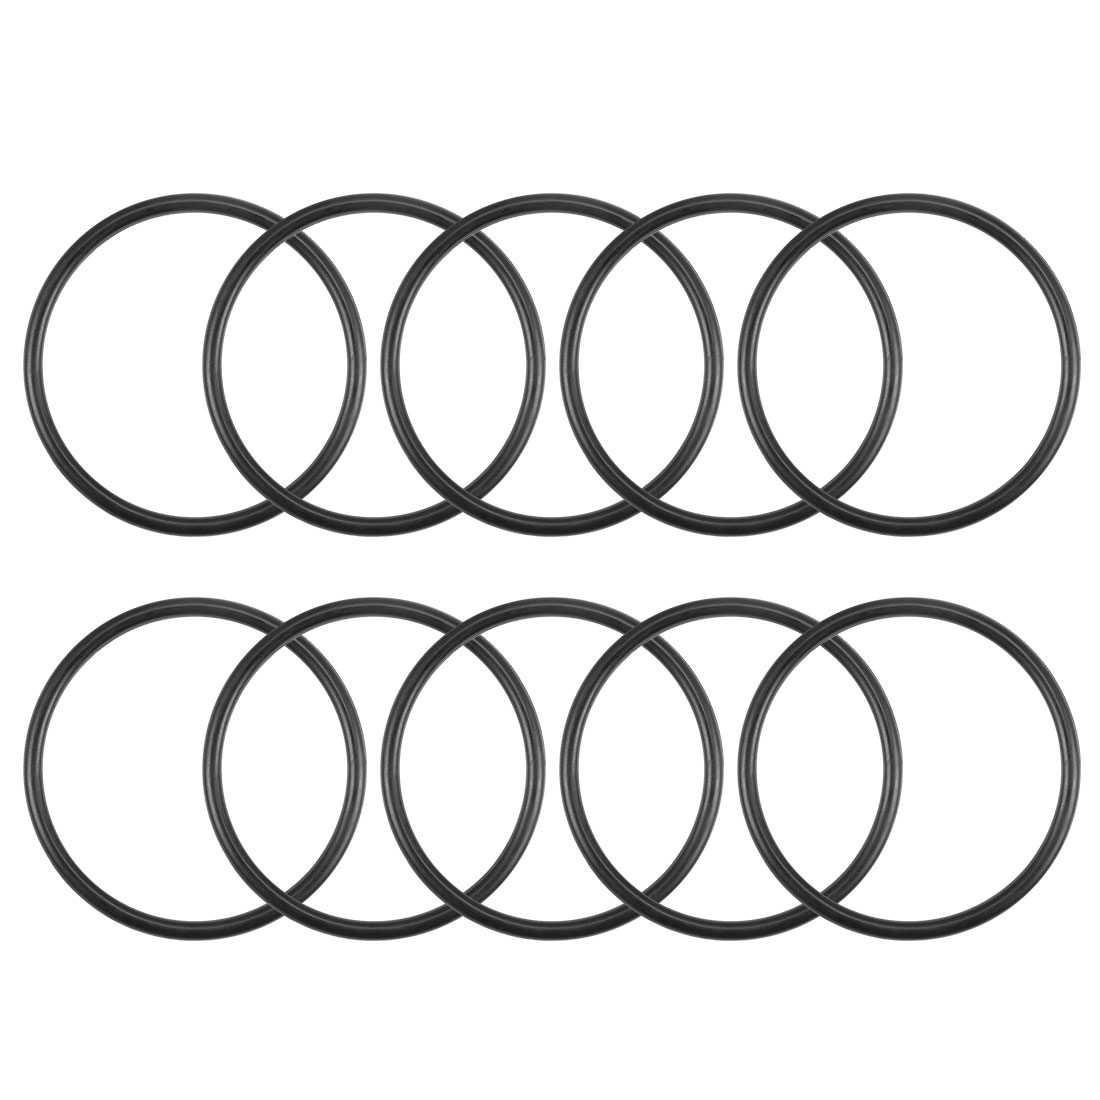 O-Rings Nitrile Rubber 24.5mm x 28.1mm x 1.8mm Round Seal Gasket 10Pcs